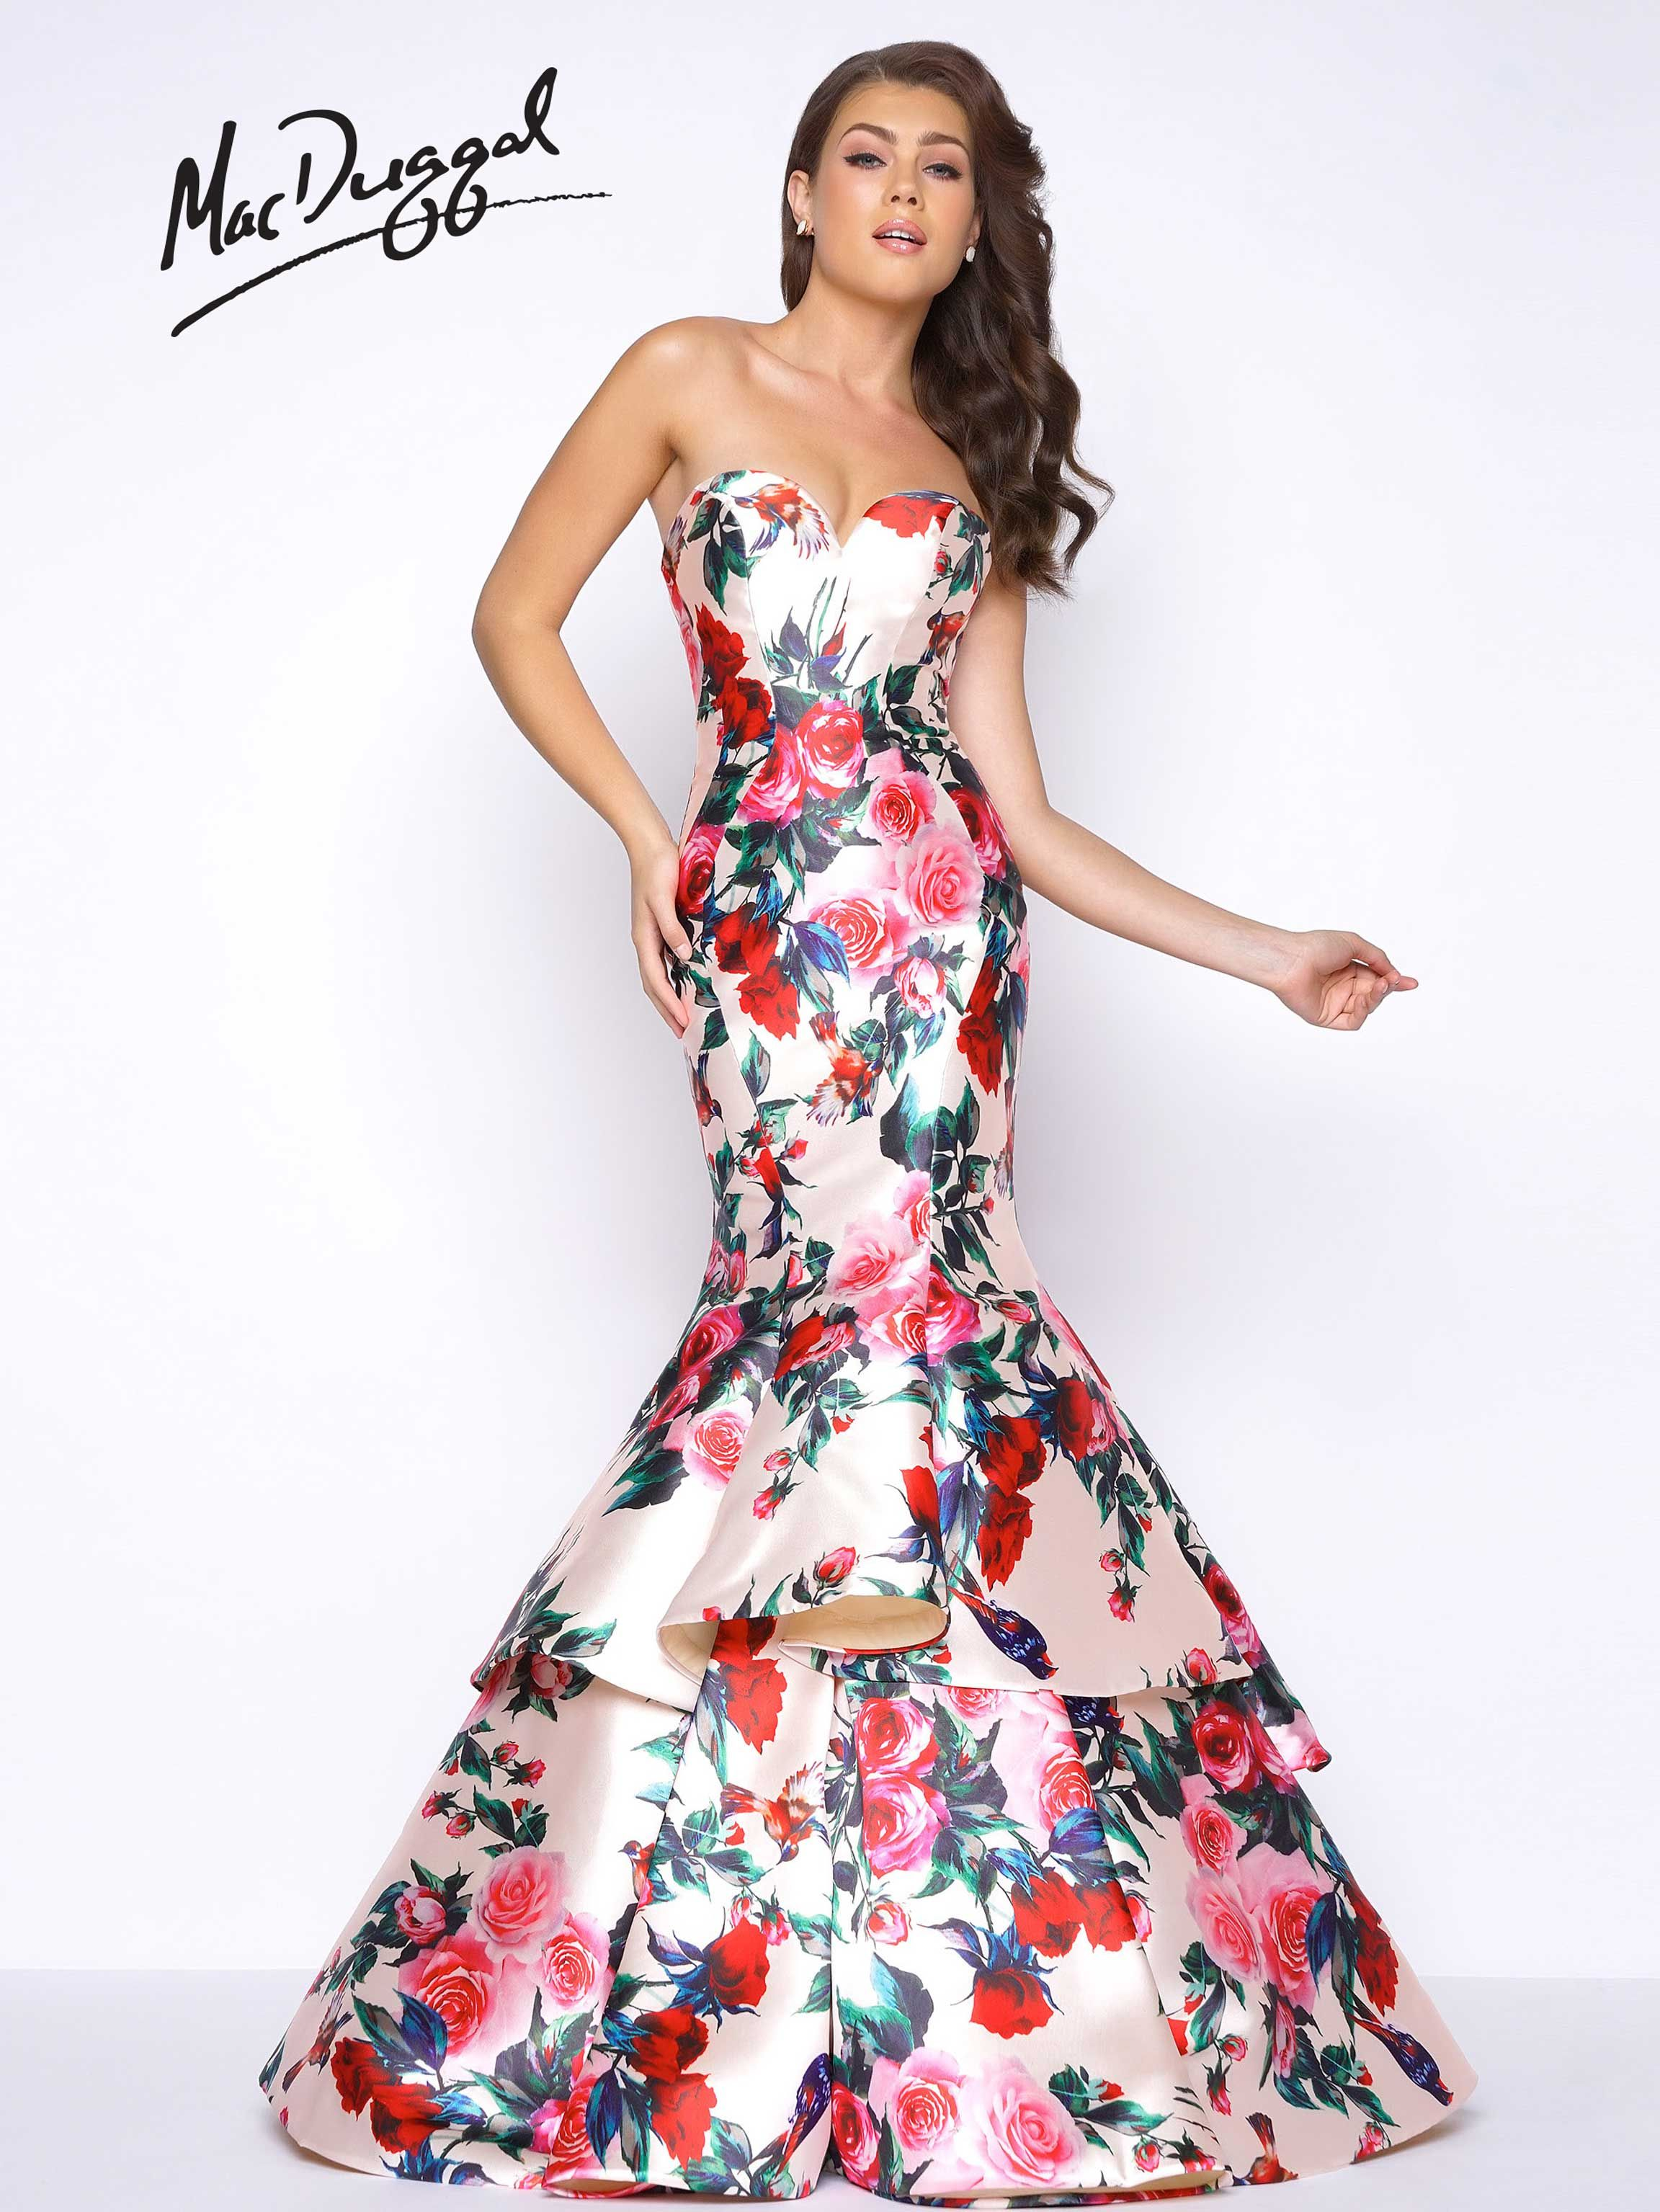 Back Open strapless dress pictures catalog photo